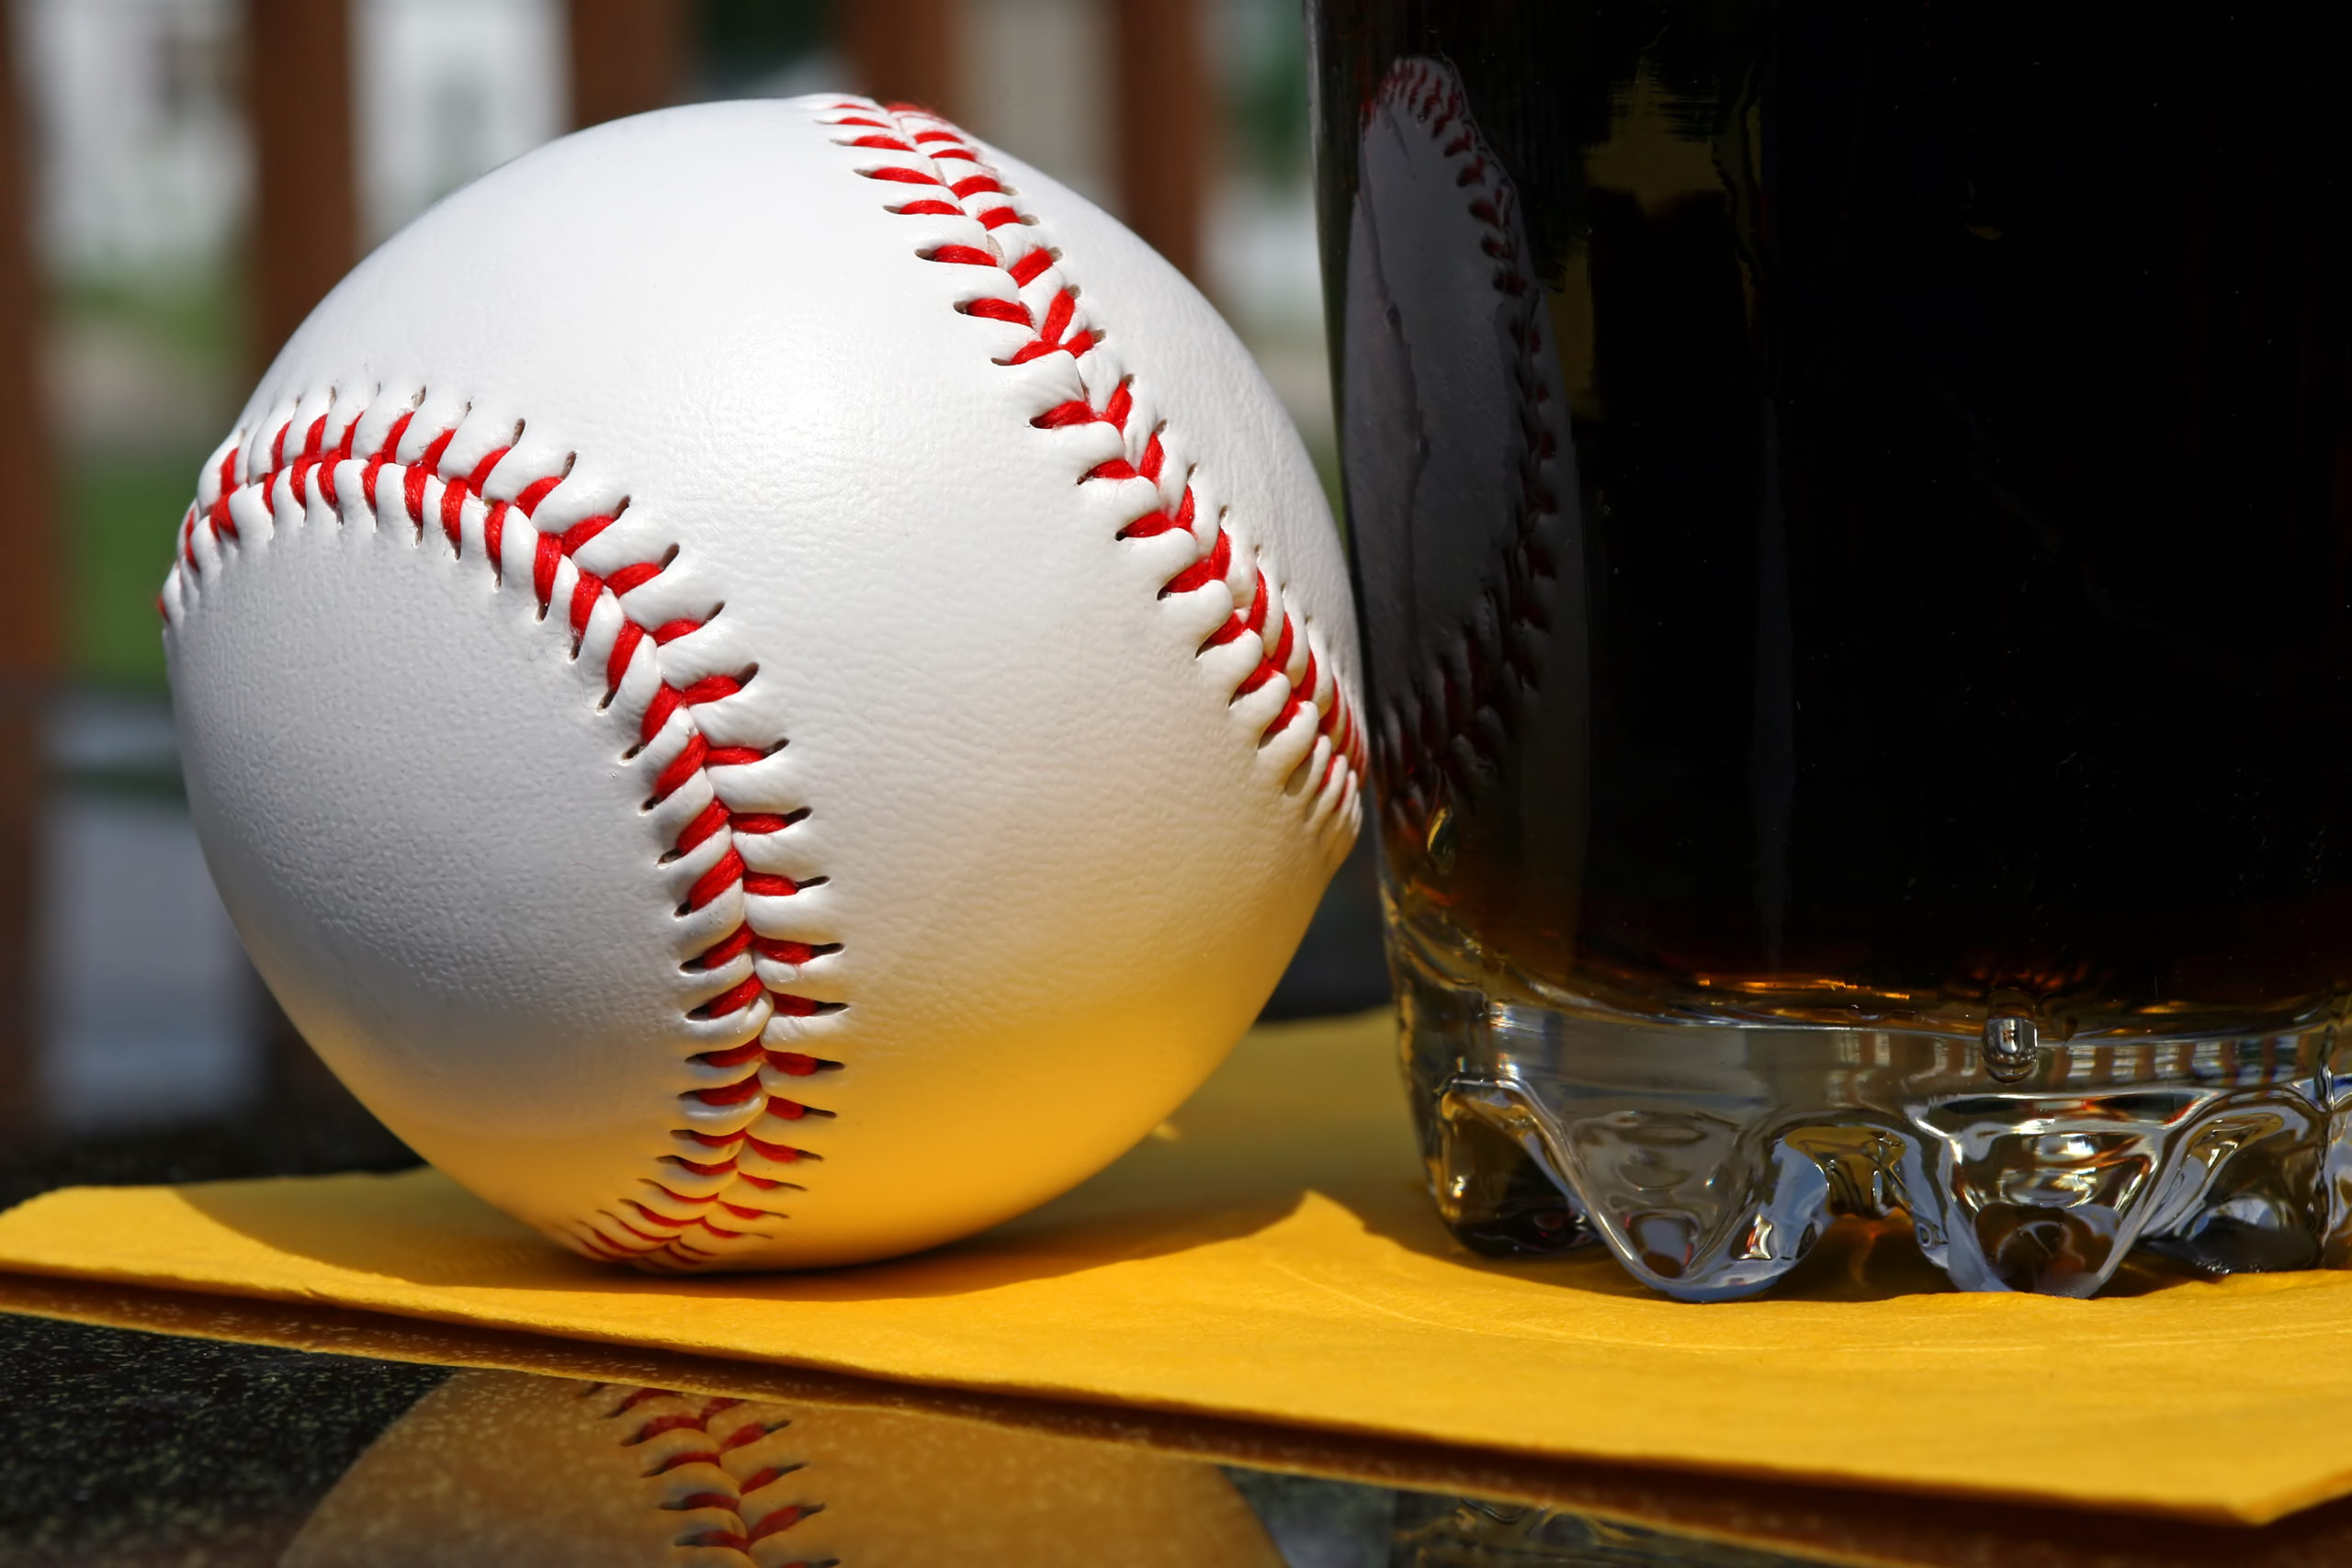 Weekly Economic News Roundup and home plate umpires